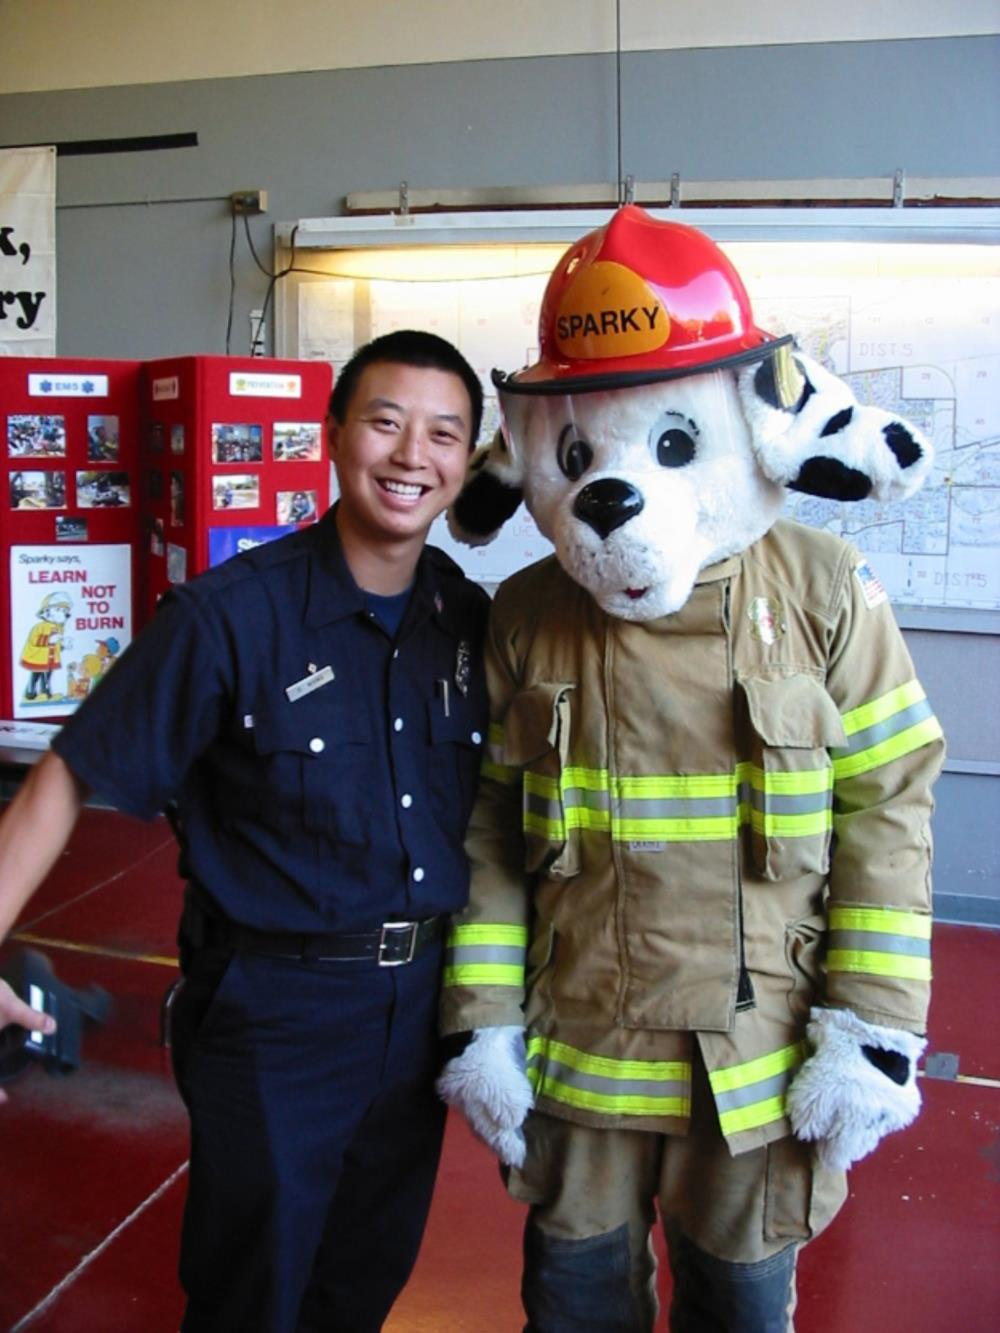 Firefighter with Sparky Mascot